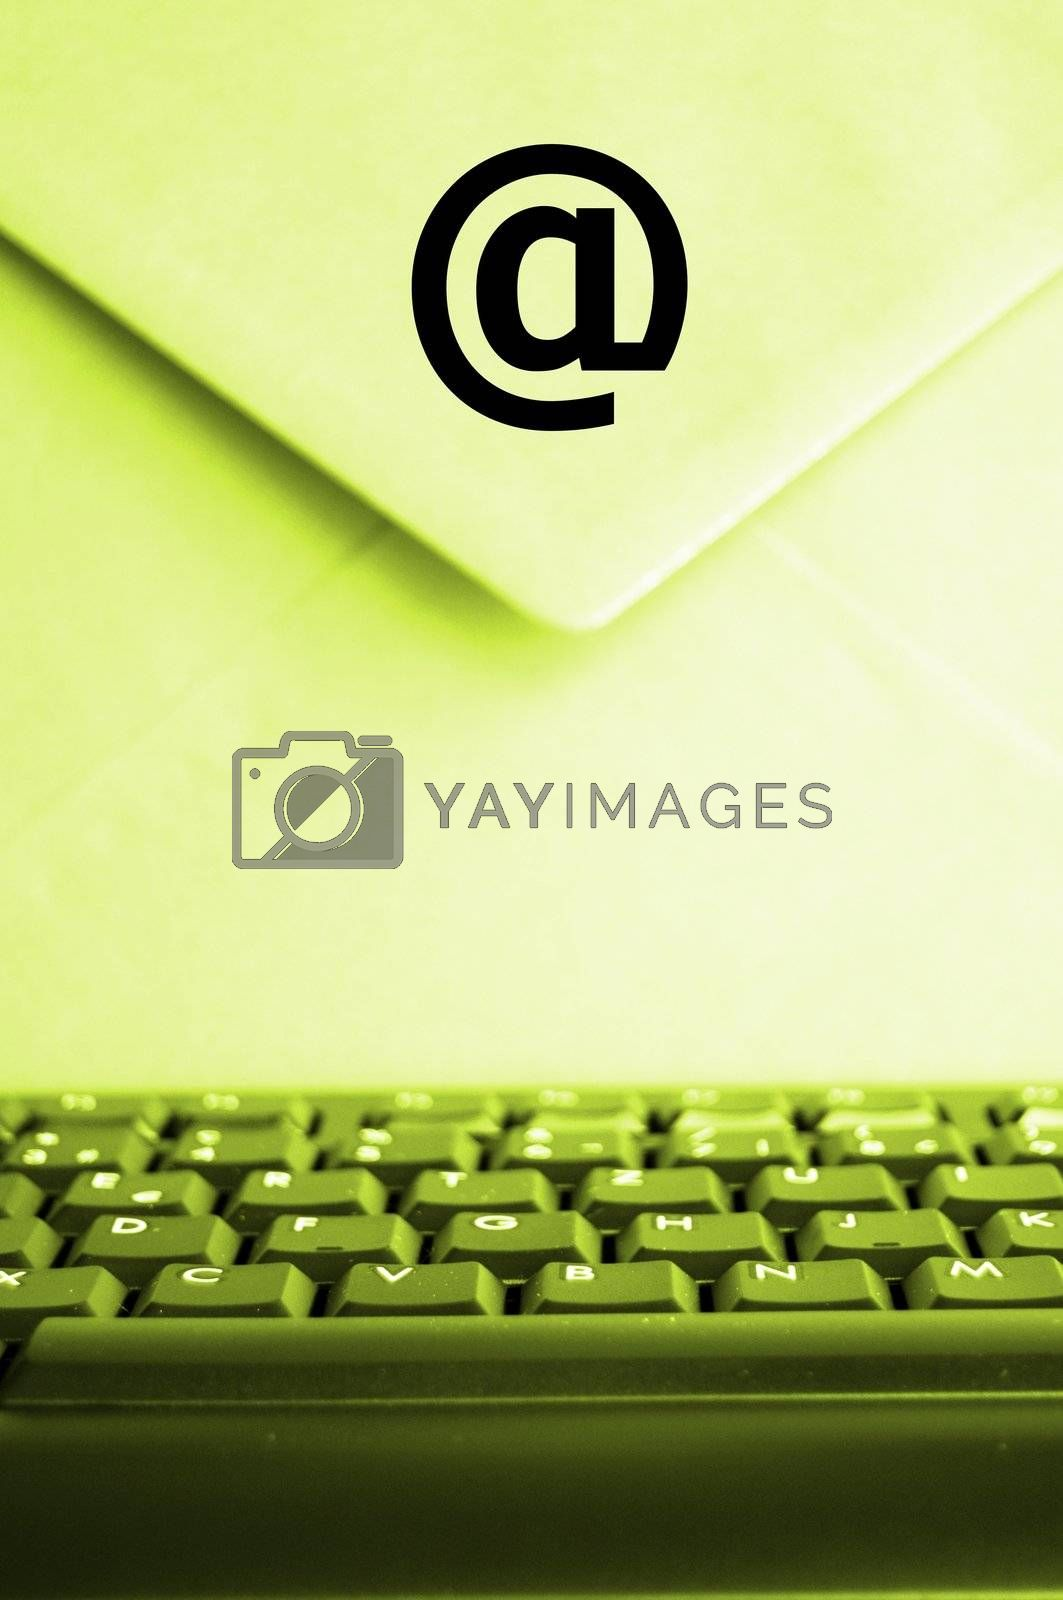 email concept with envelop computer keyboard and copyspace